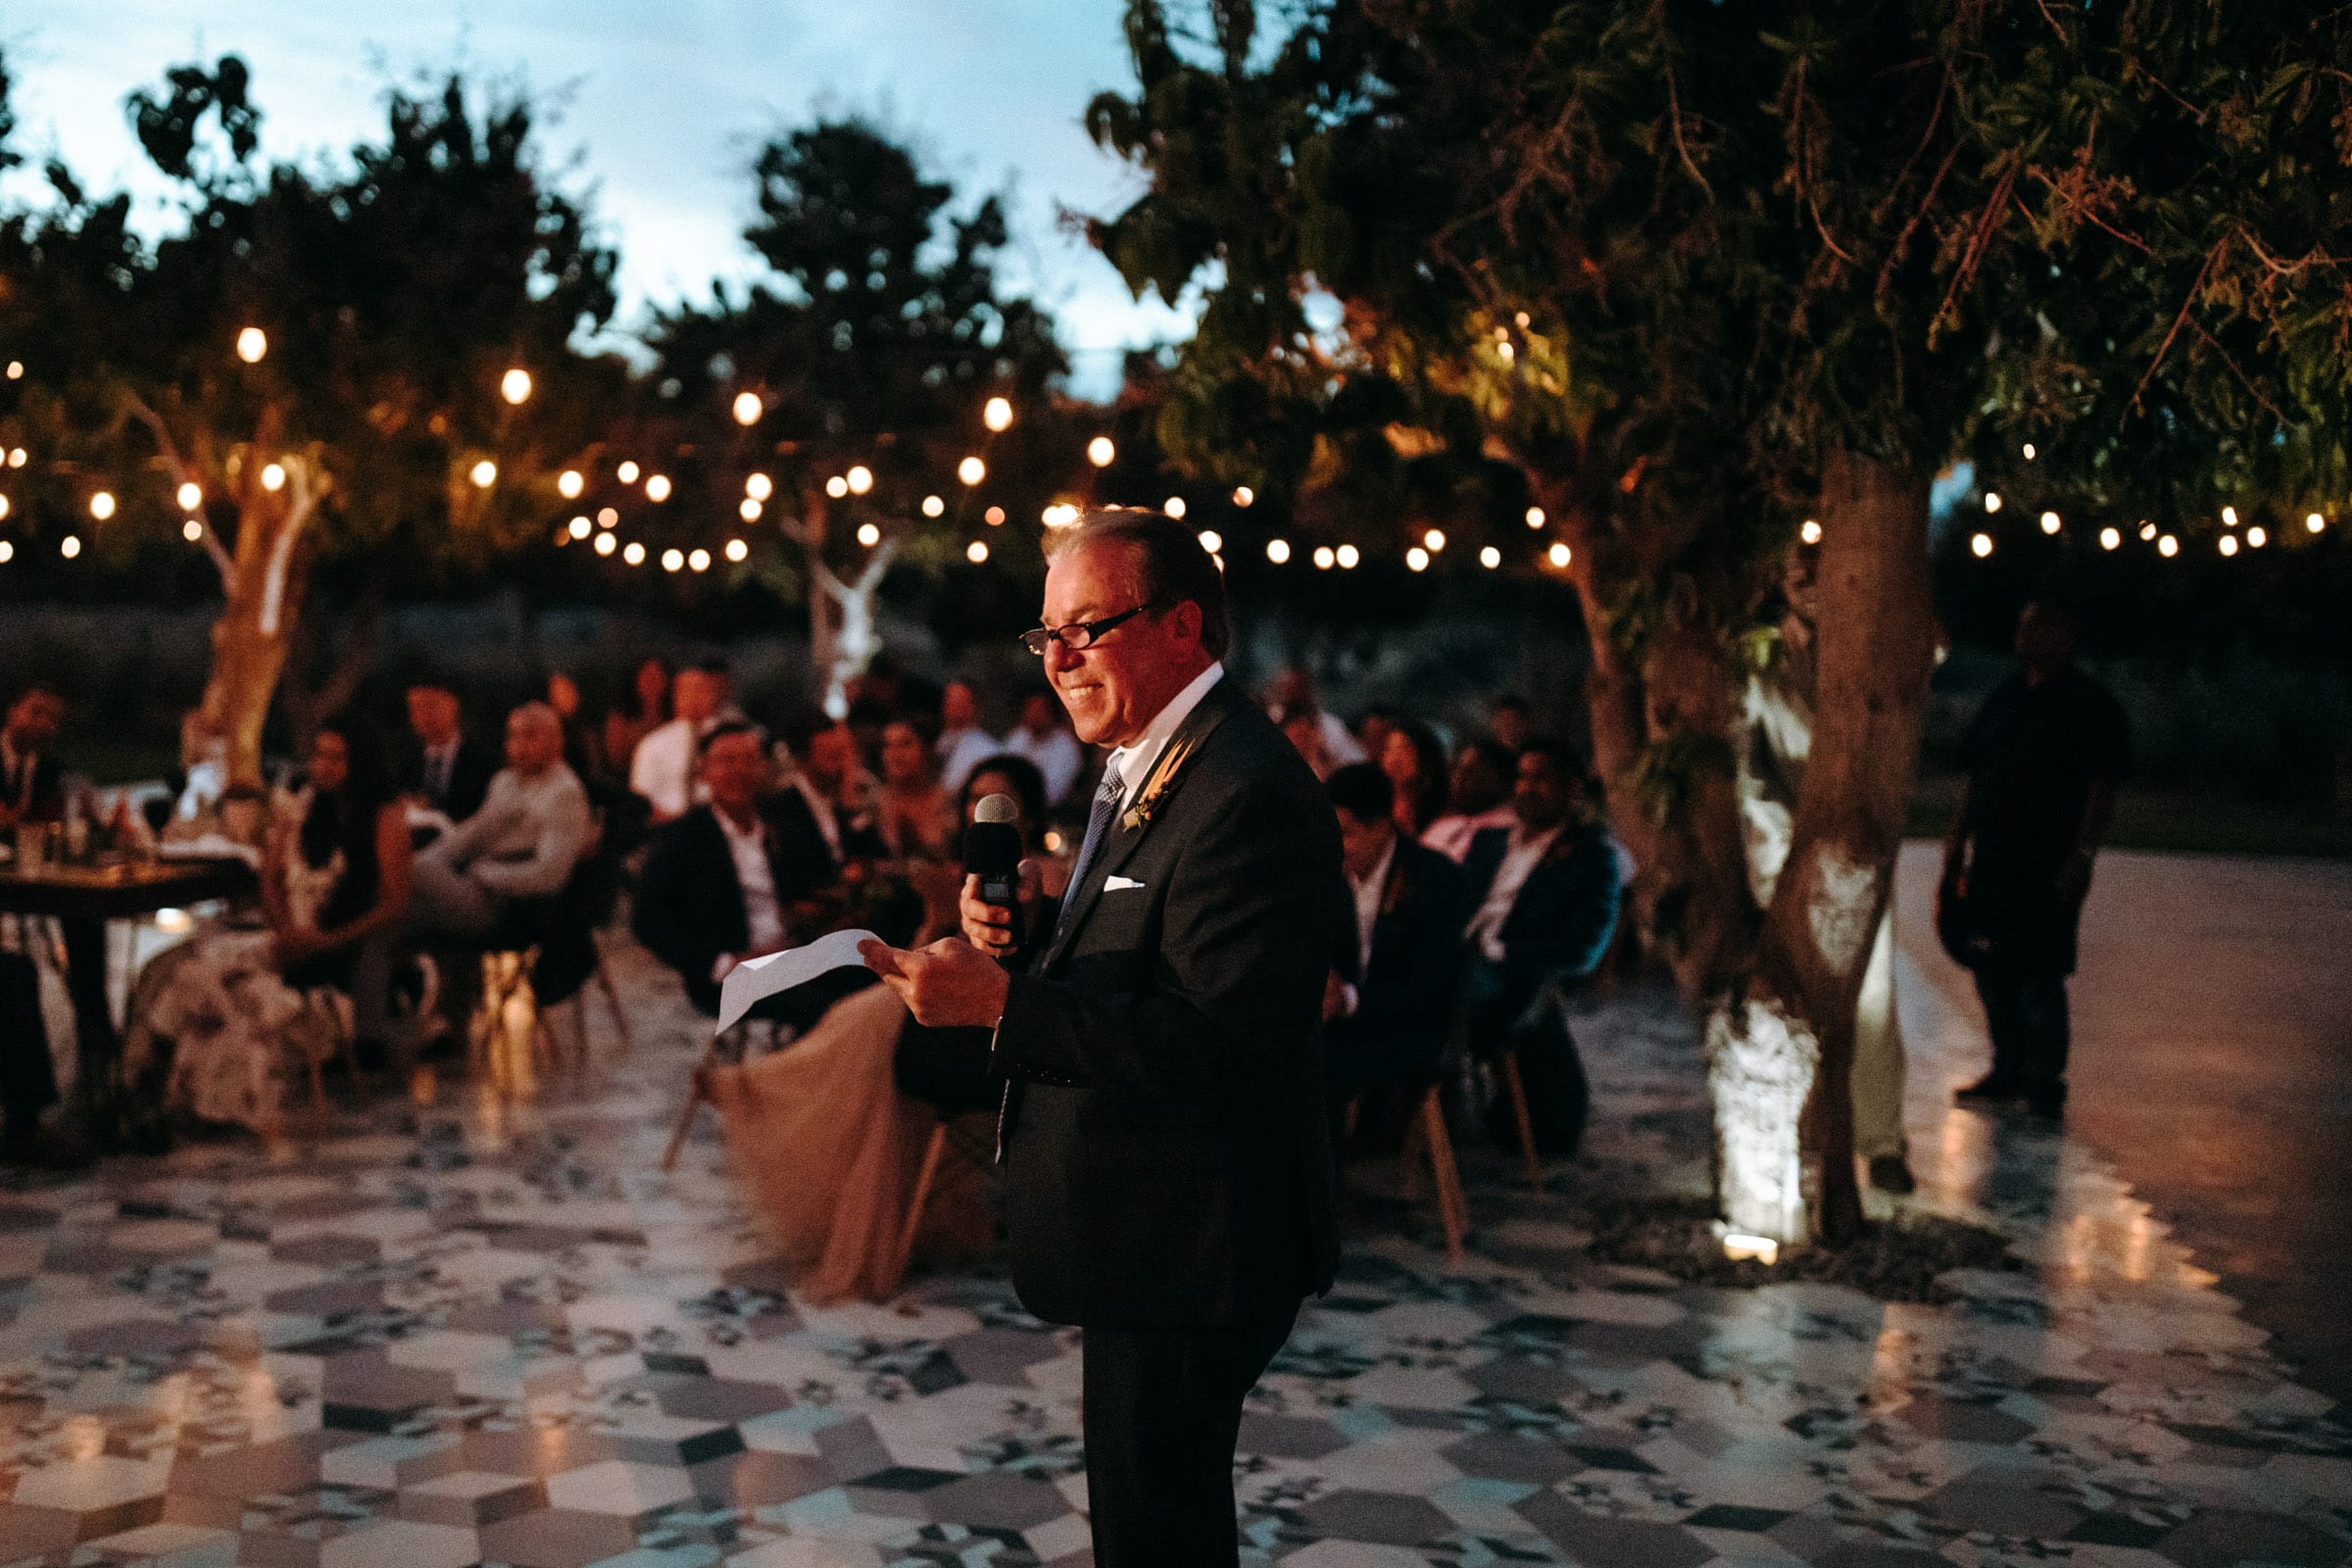 The father is holding a speech at the acre baja wedding.